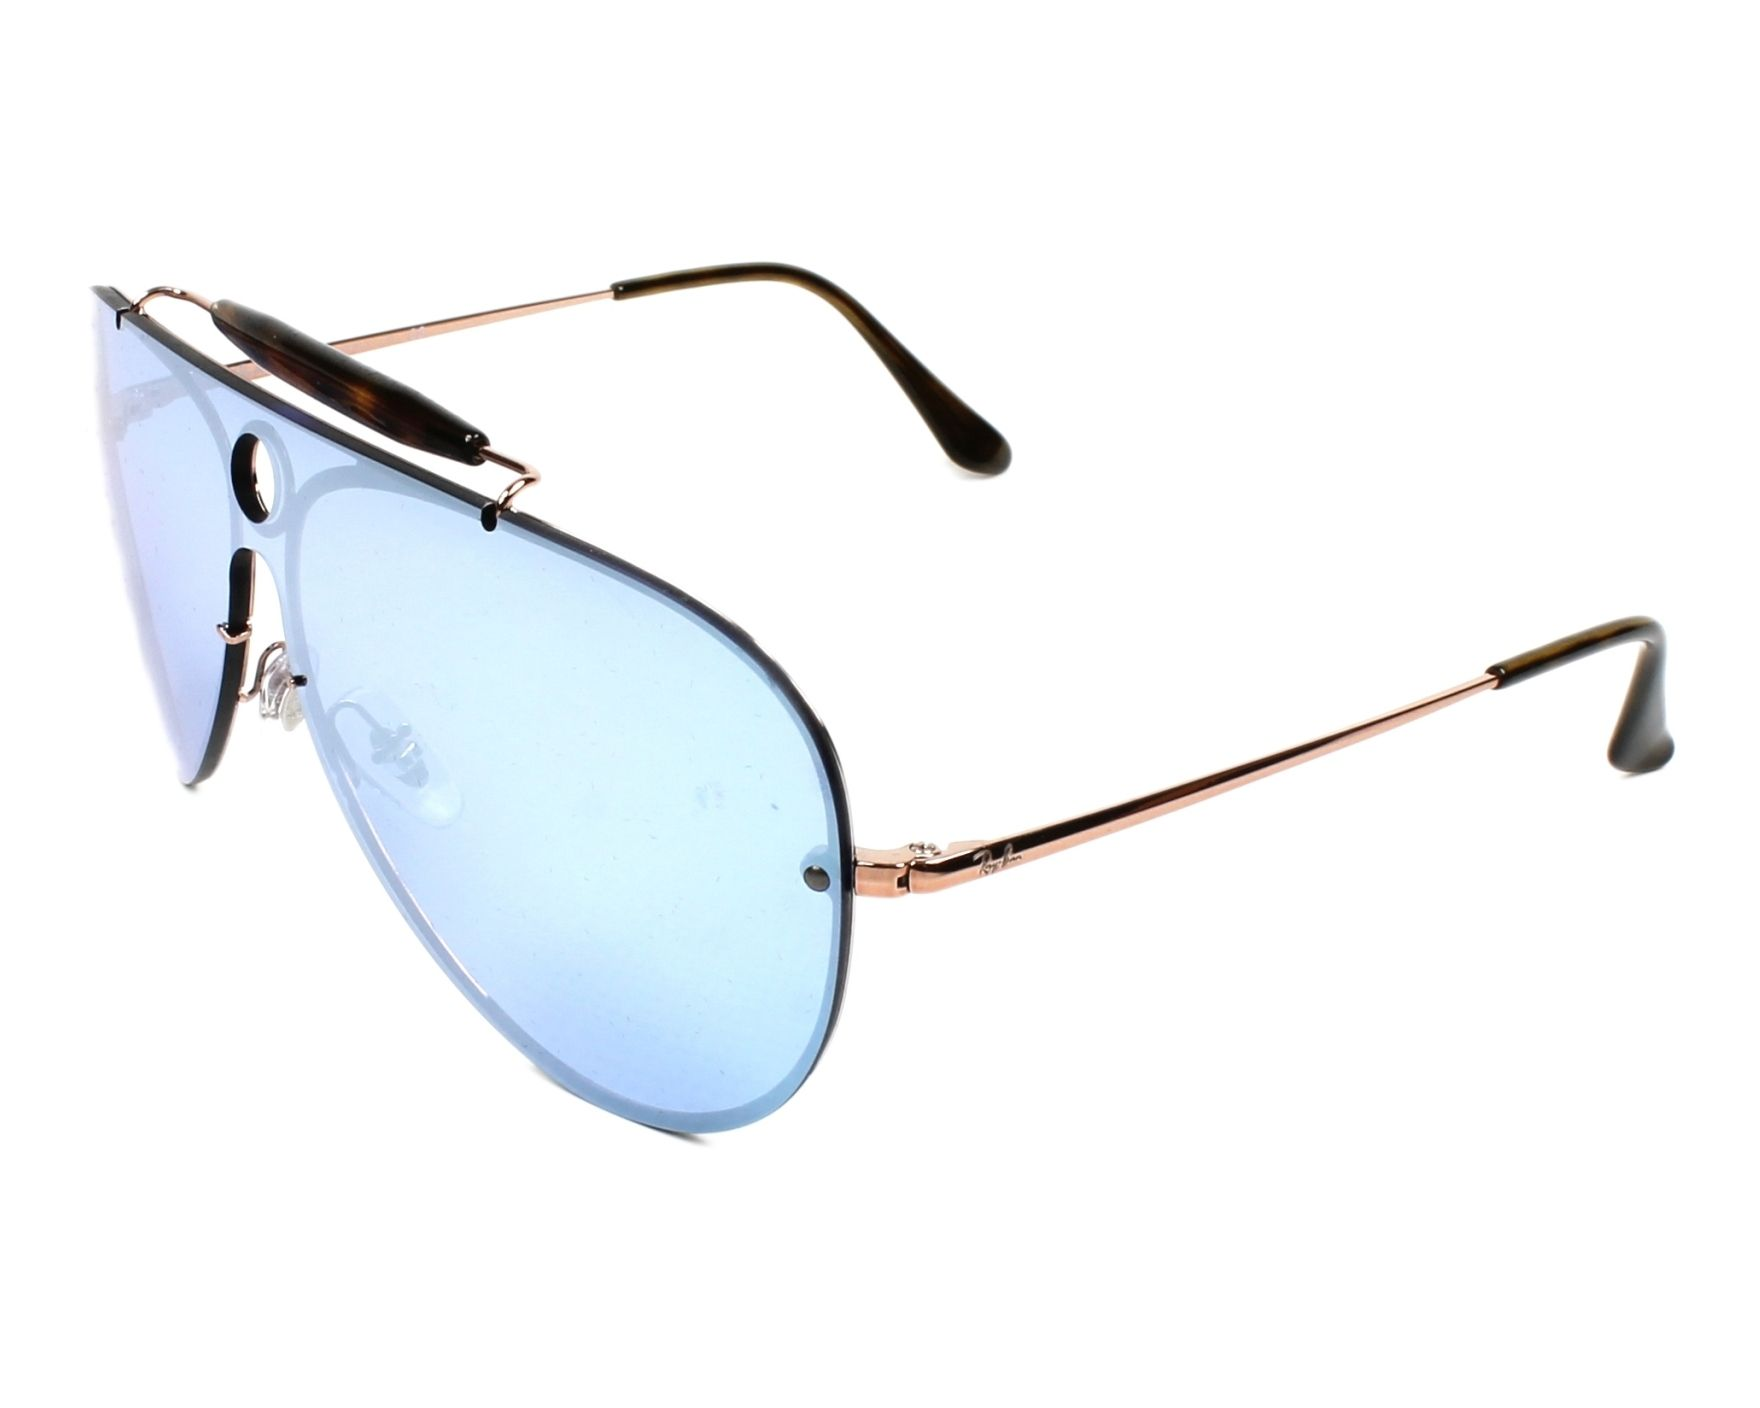 Ray Ban Rb 3581n Blaze Shooter 90351u hMvR1